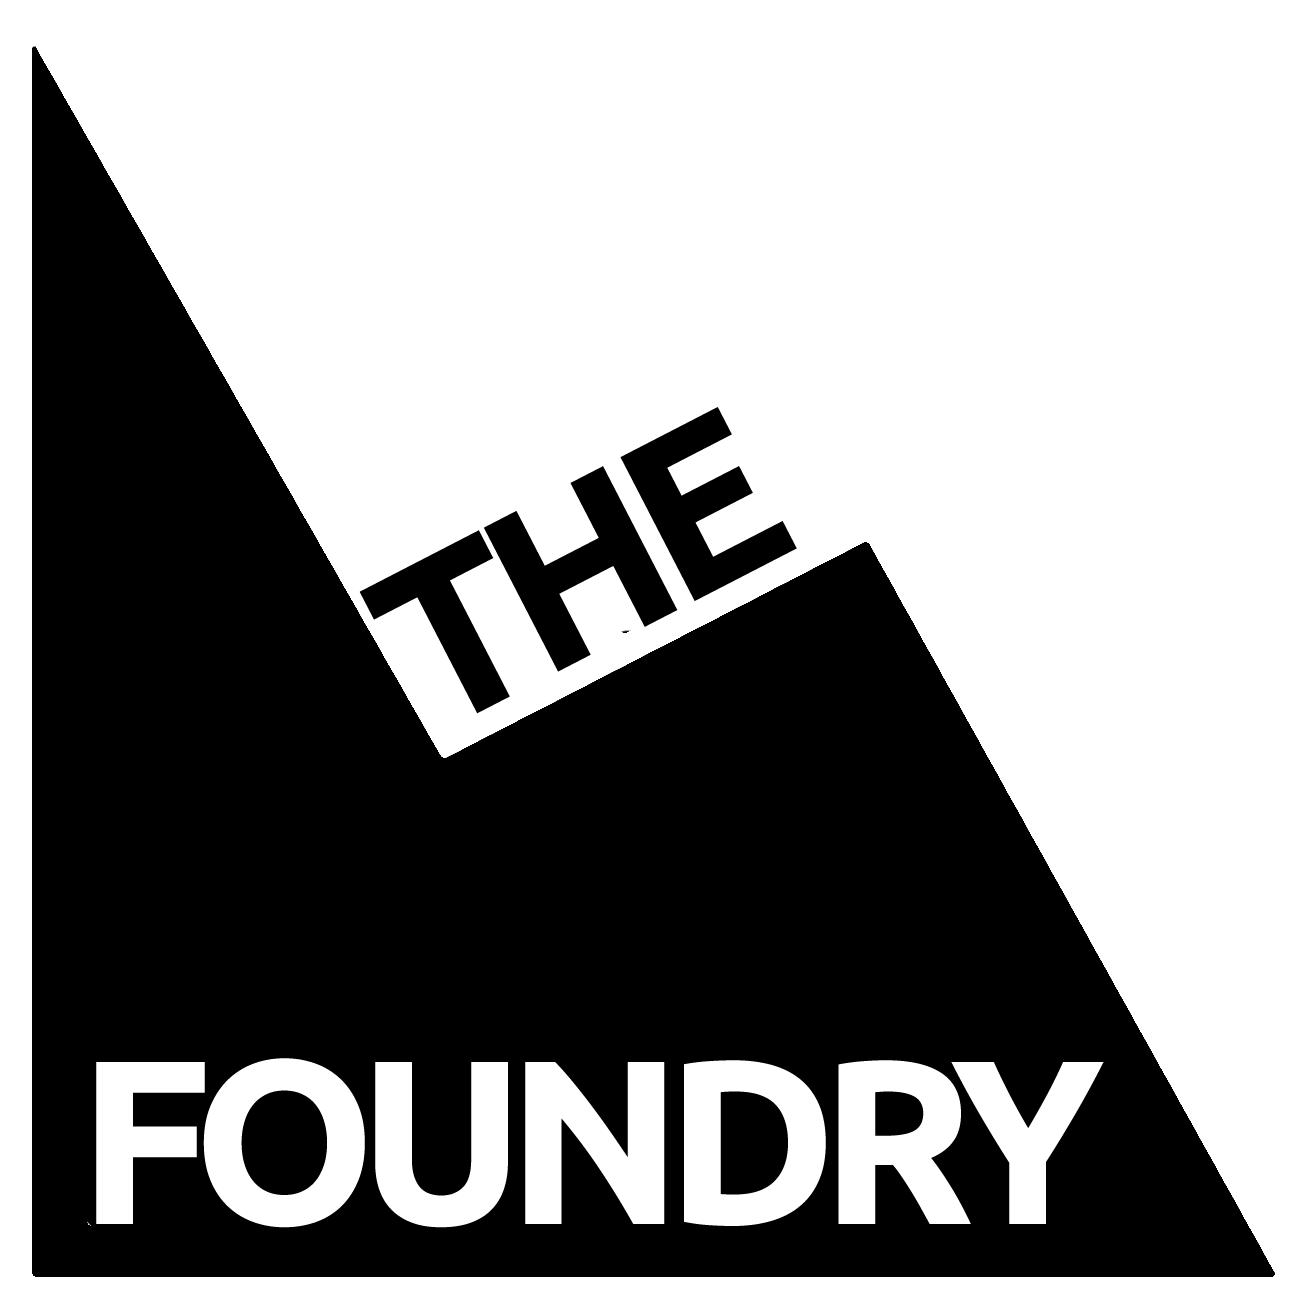 The Foundry Mountaineering Club Ltd Ltd